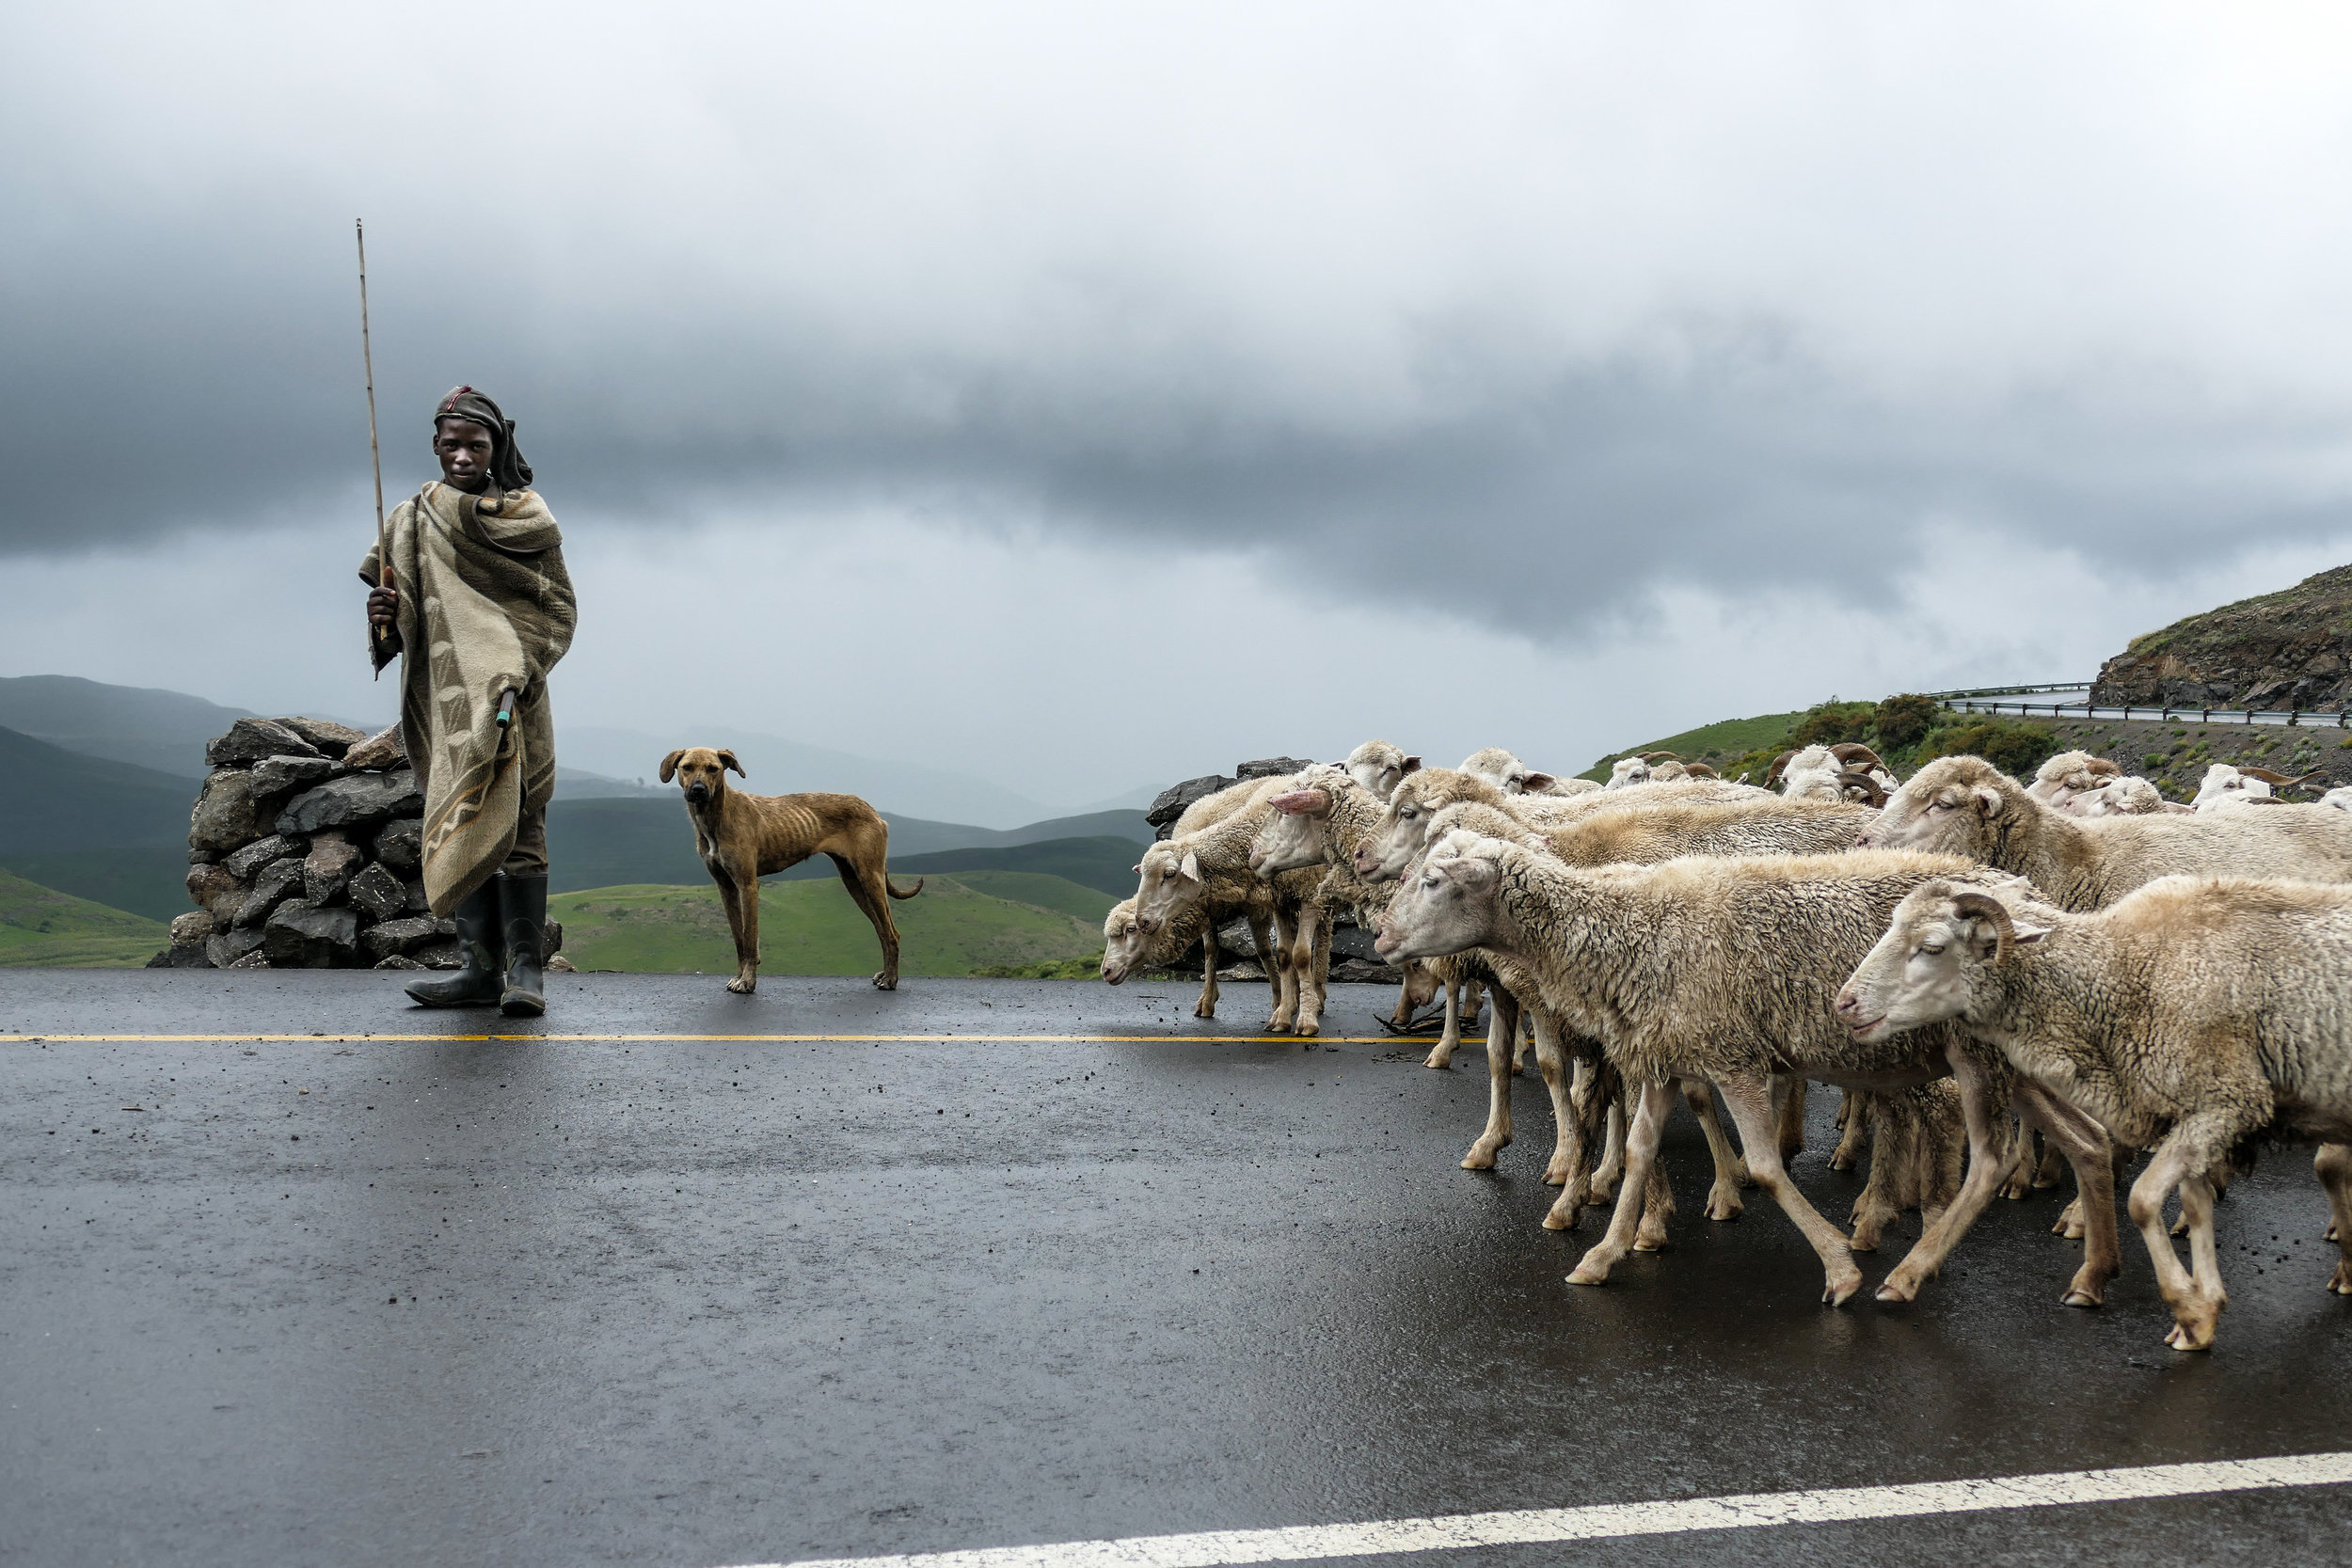 A Basotho shepherd boy in Lesotho travels with his father and flock of sheep.